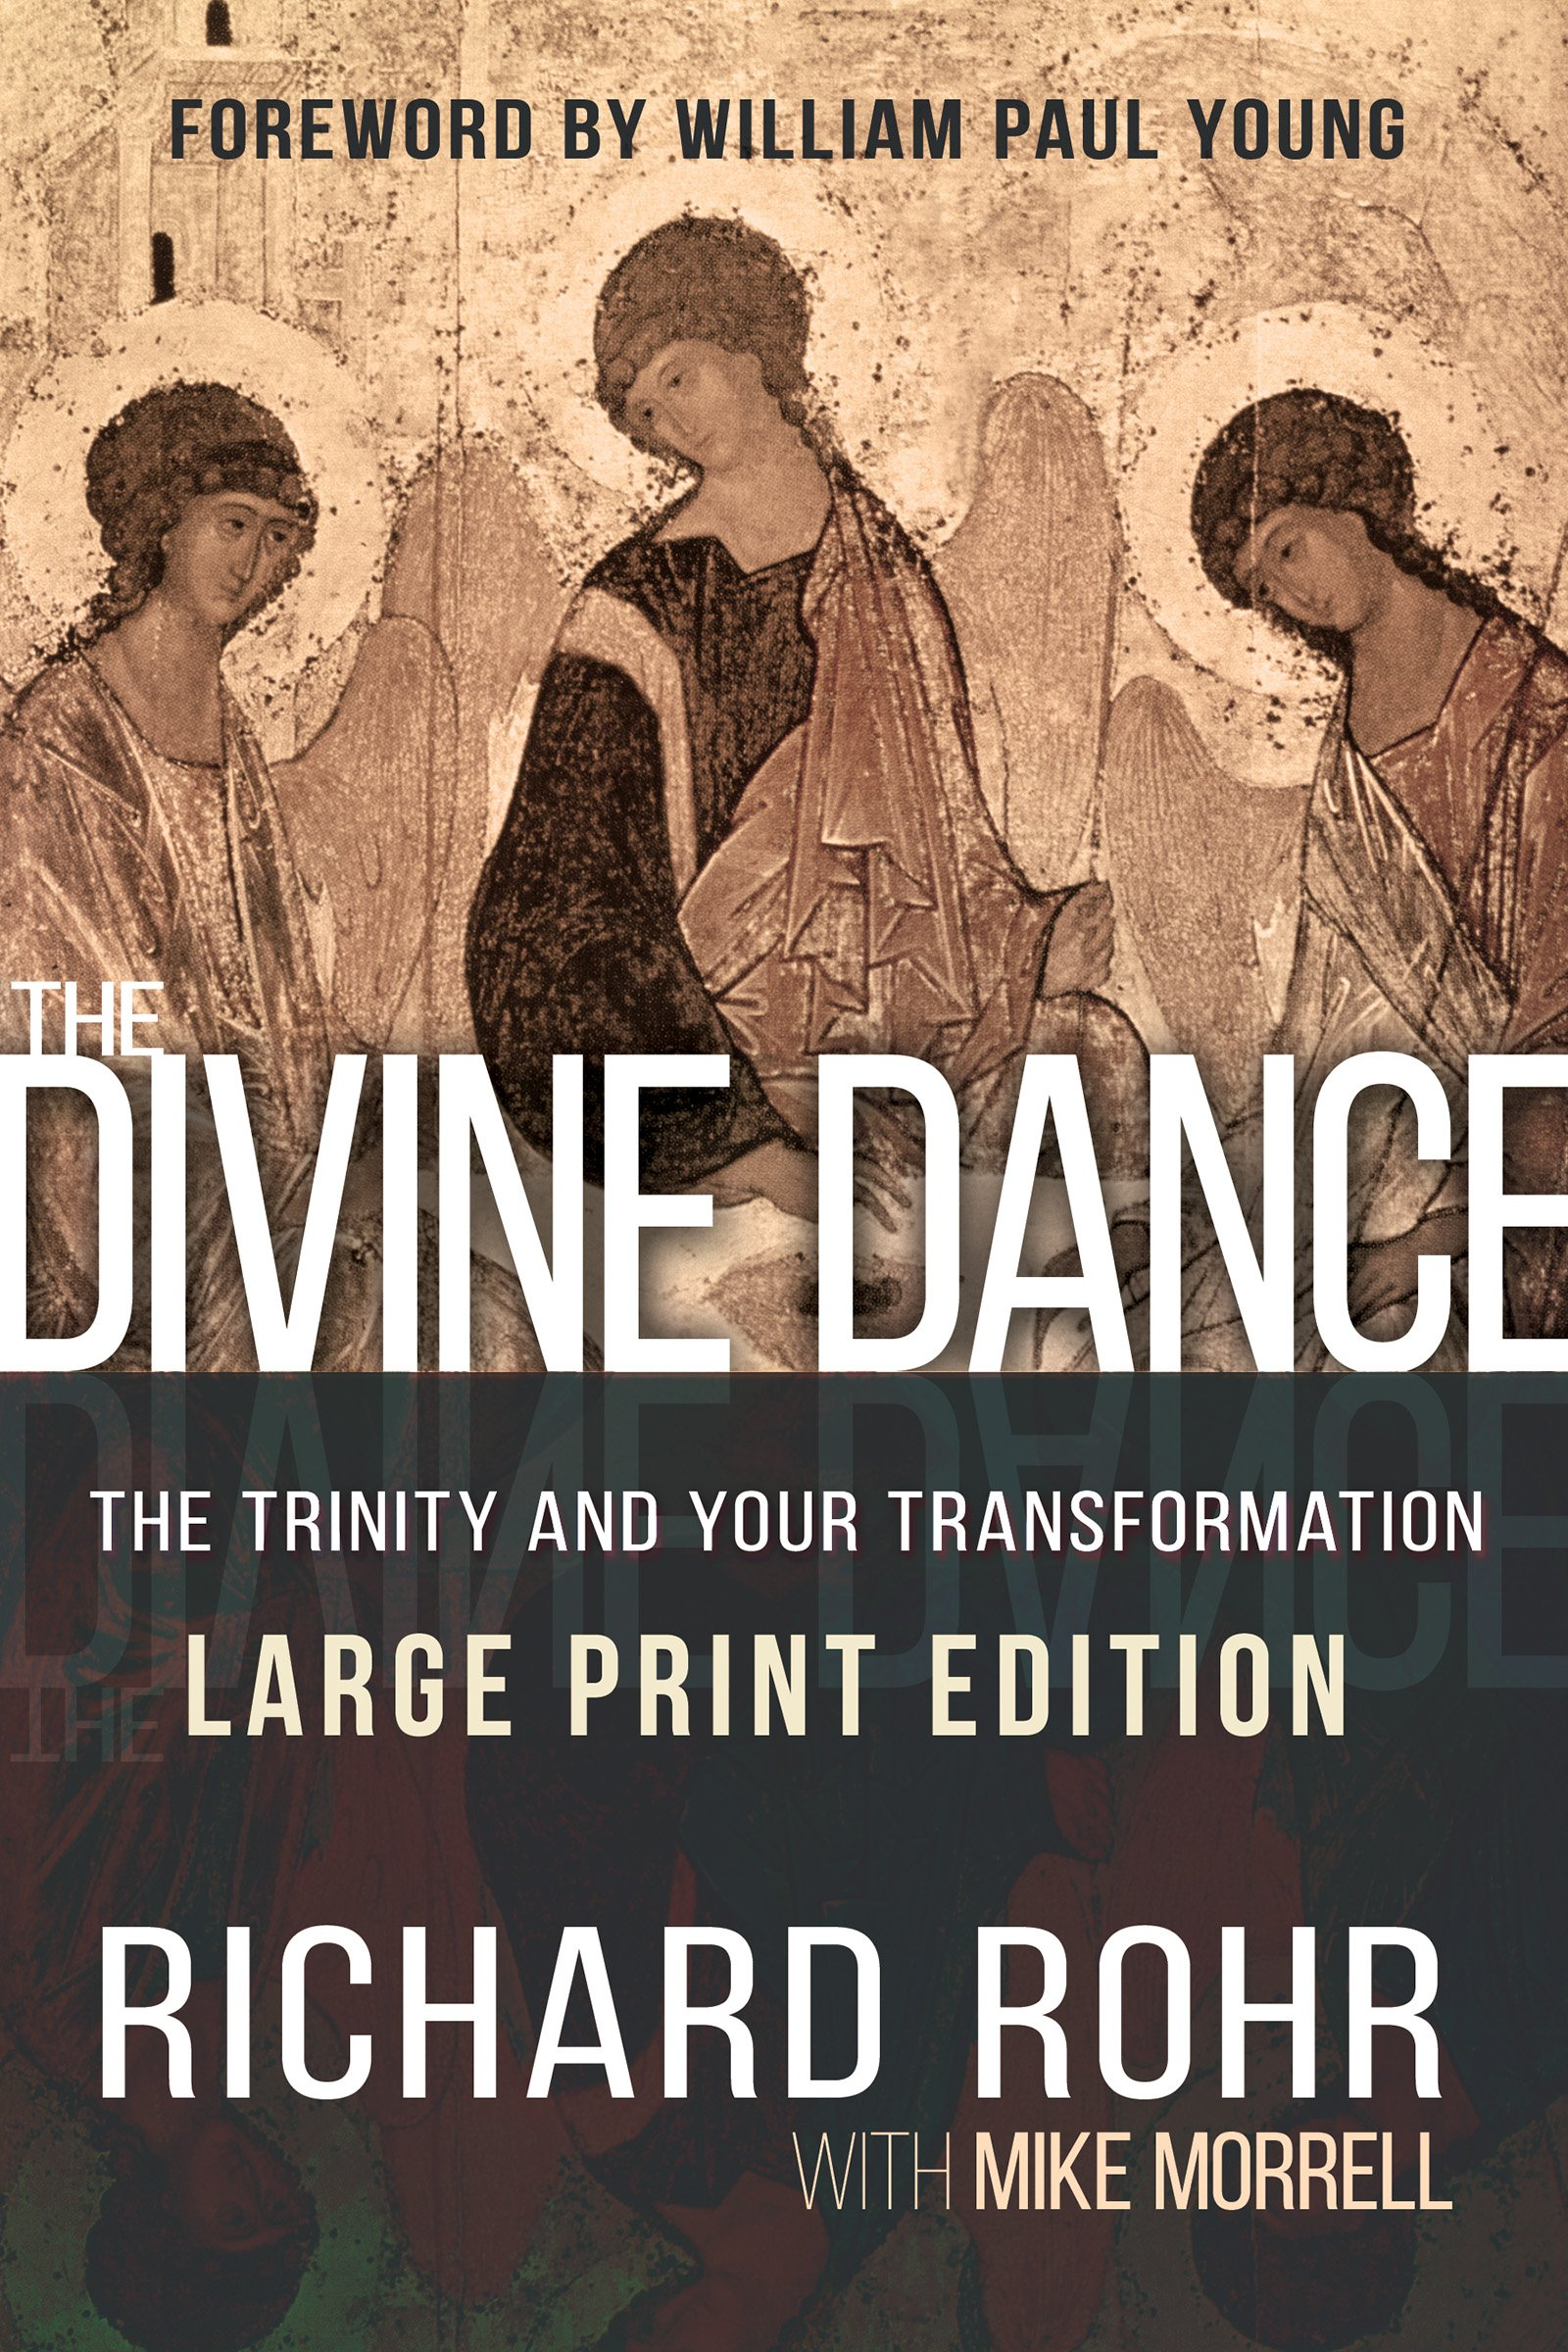 The Divine Dance: The Trinity And Your Transformation: Richard Rohr, Mike  Morrell, William Paul Young: 9781629119489: Amazon: Books